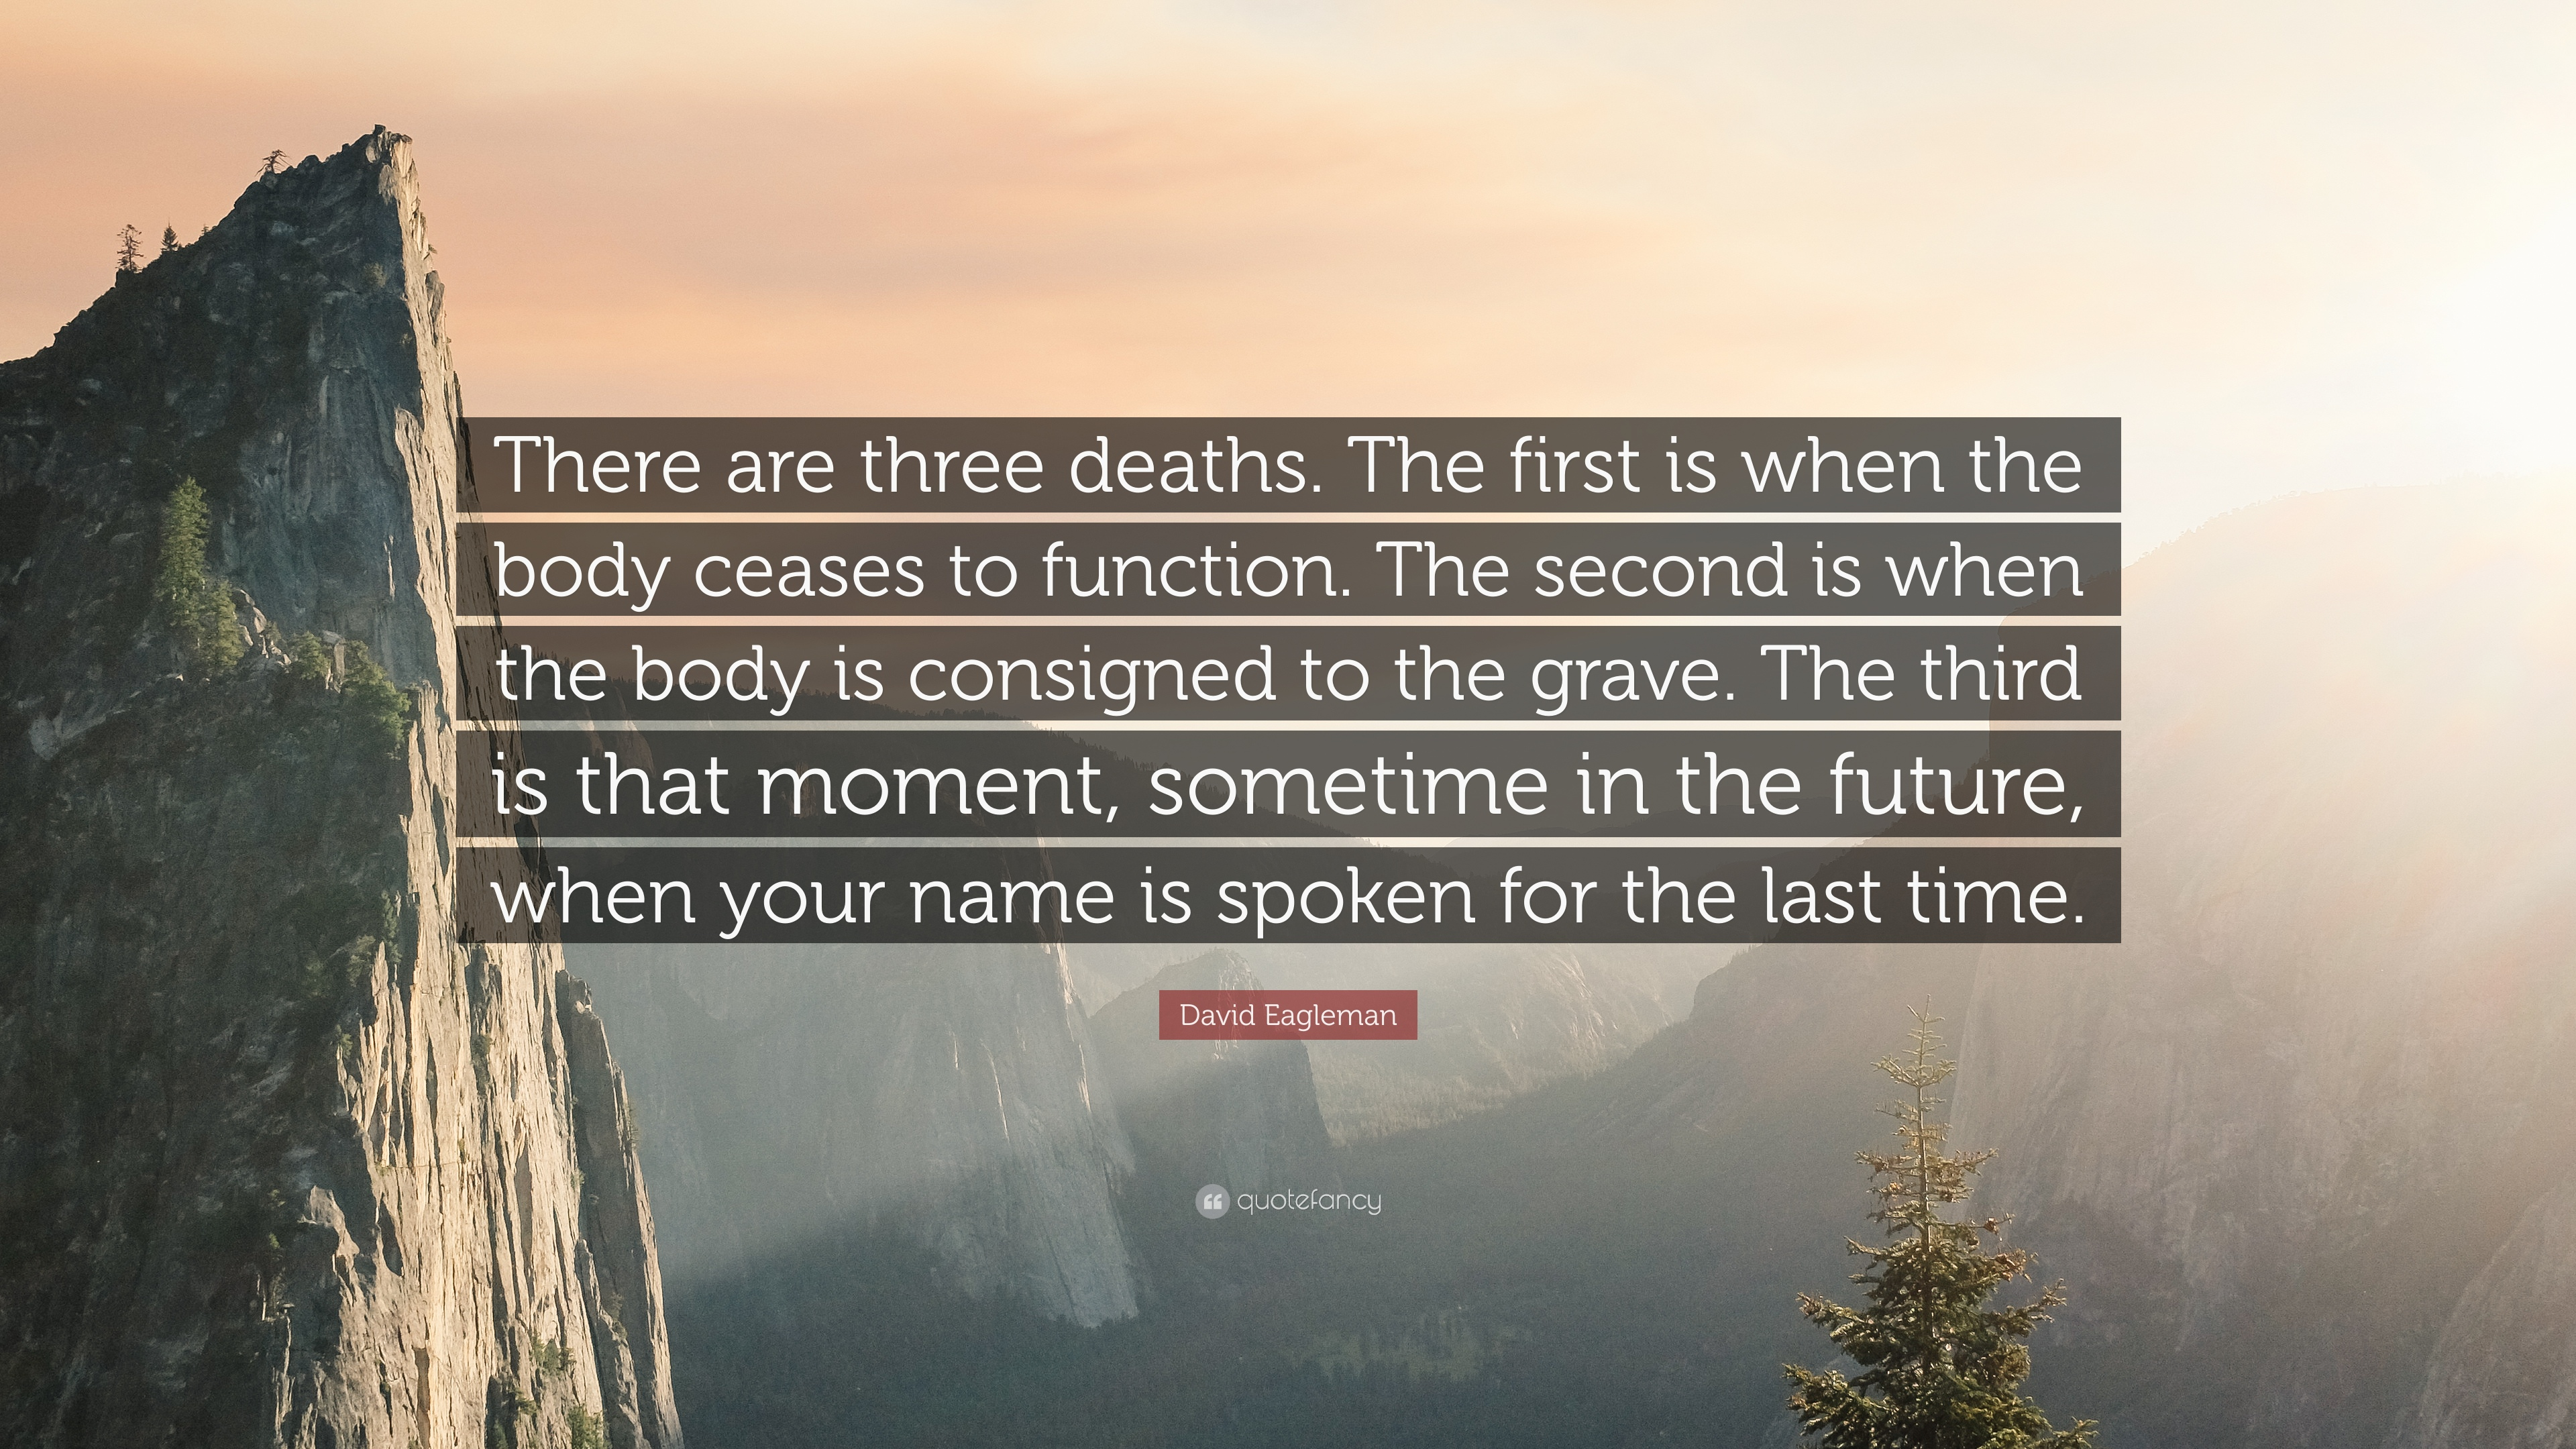 """There are three deaths. The first is when the .. Vii ' body ceases to function. The second is when '3 Wbdy is consigned to the grave. The third *1 isthatmont, sometime in the future, Mn 3'6""""?!an is spoken for the last time. https://inspirational.ly"""